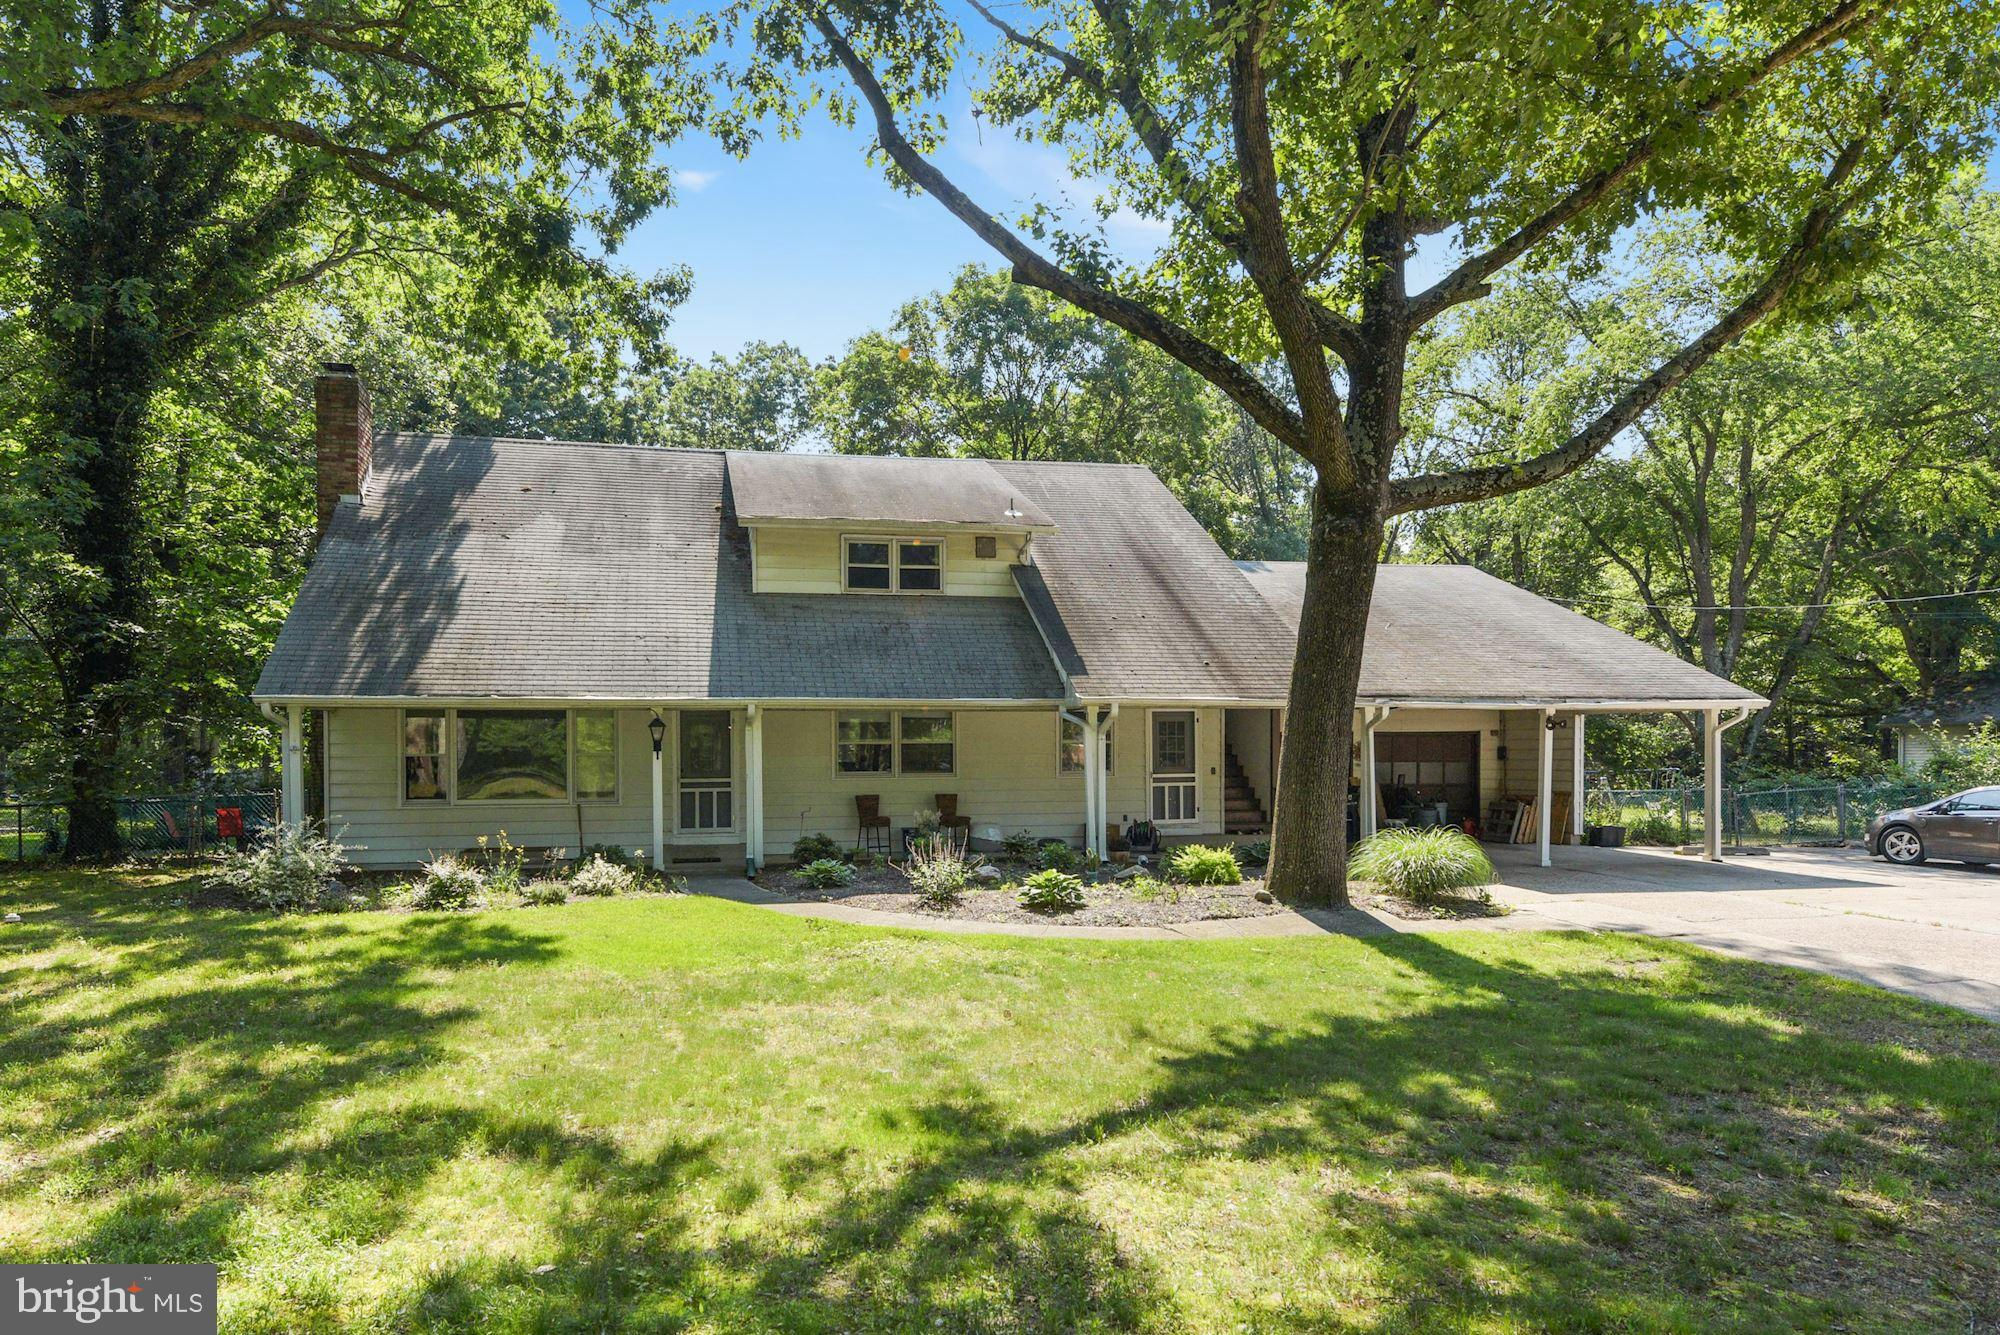 1508 Route 206, Tabernacle, NJ 08088 now has a new price of $315,000!